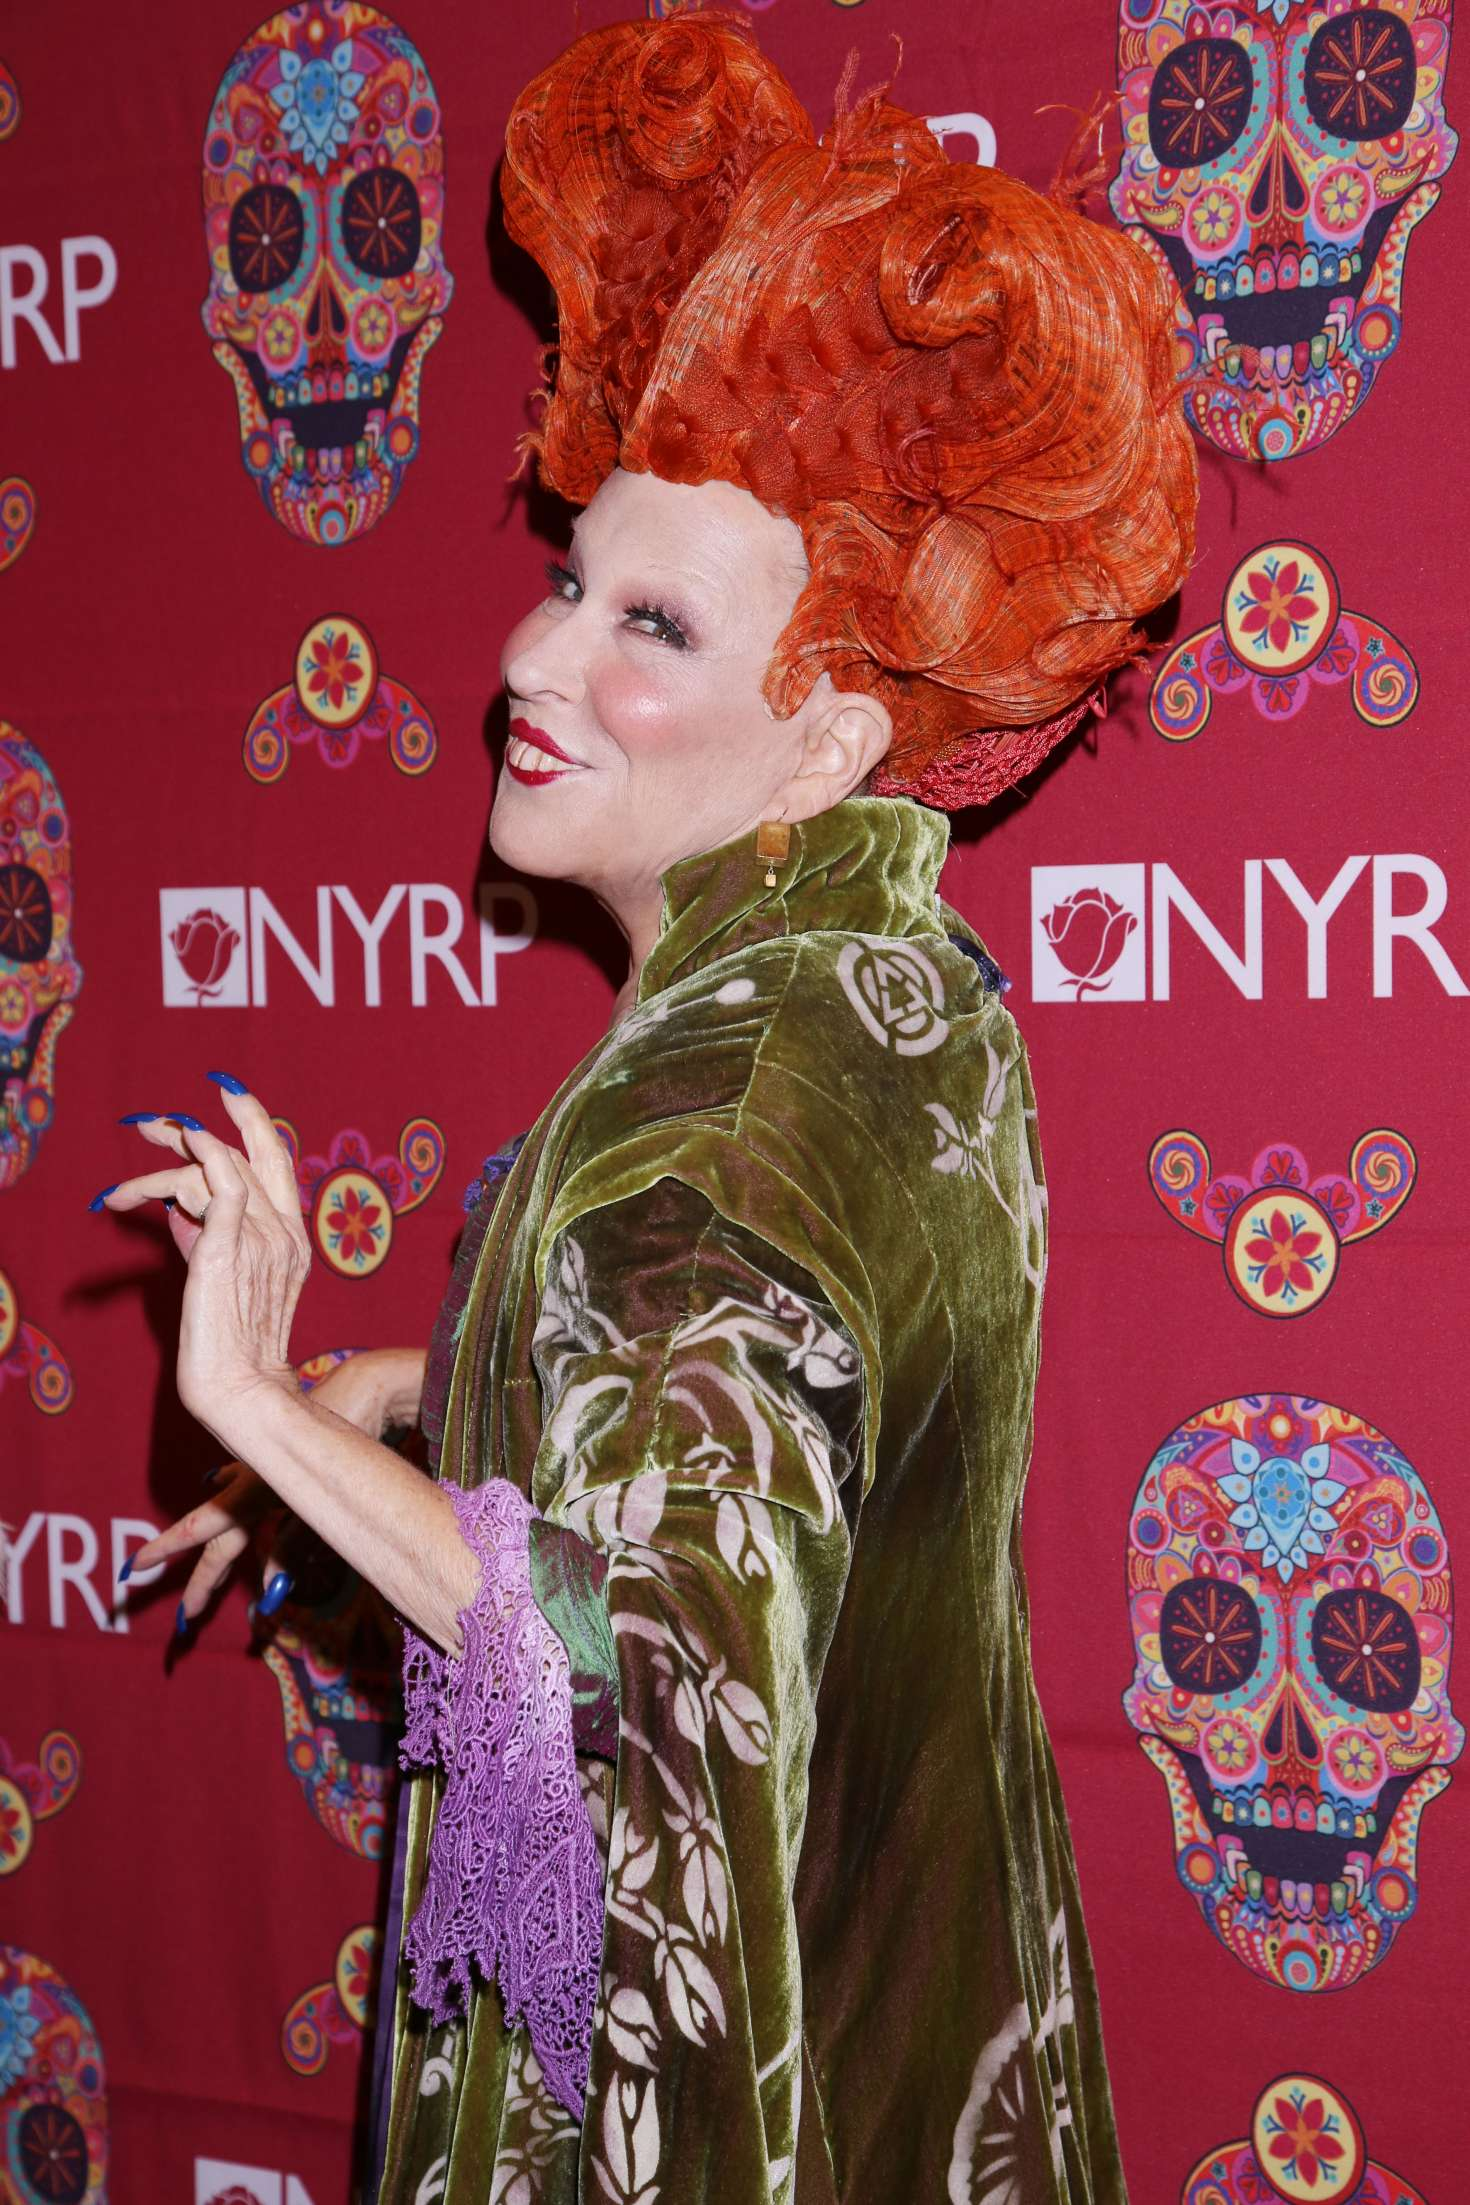 Bette Midler 2016 : Bette Midler: 2016 Halloween Bash to benefit the NYRP -05